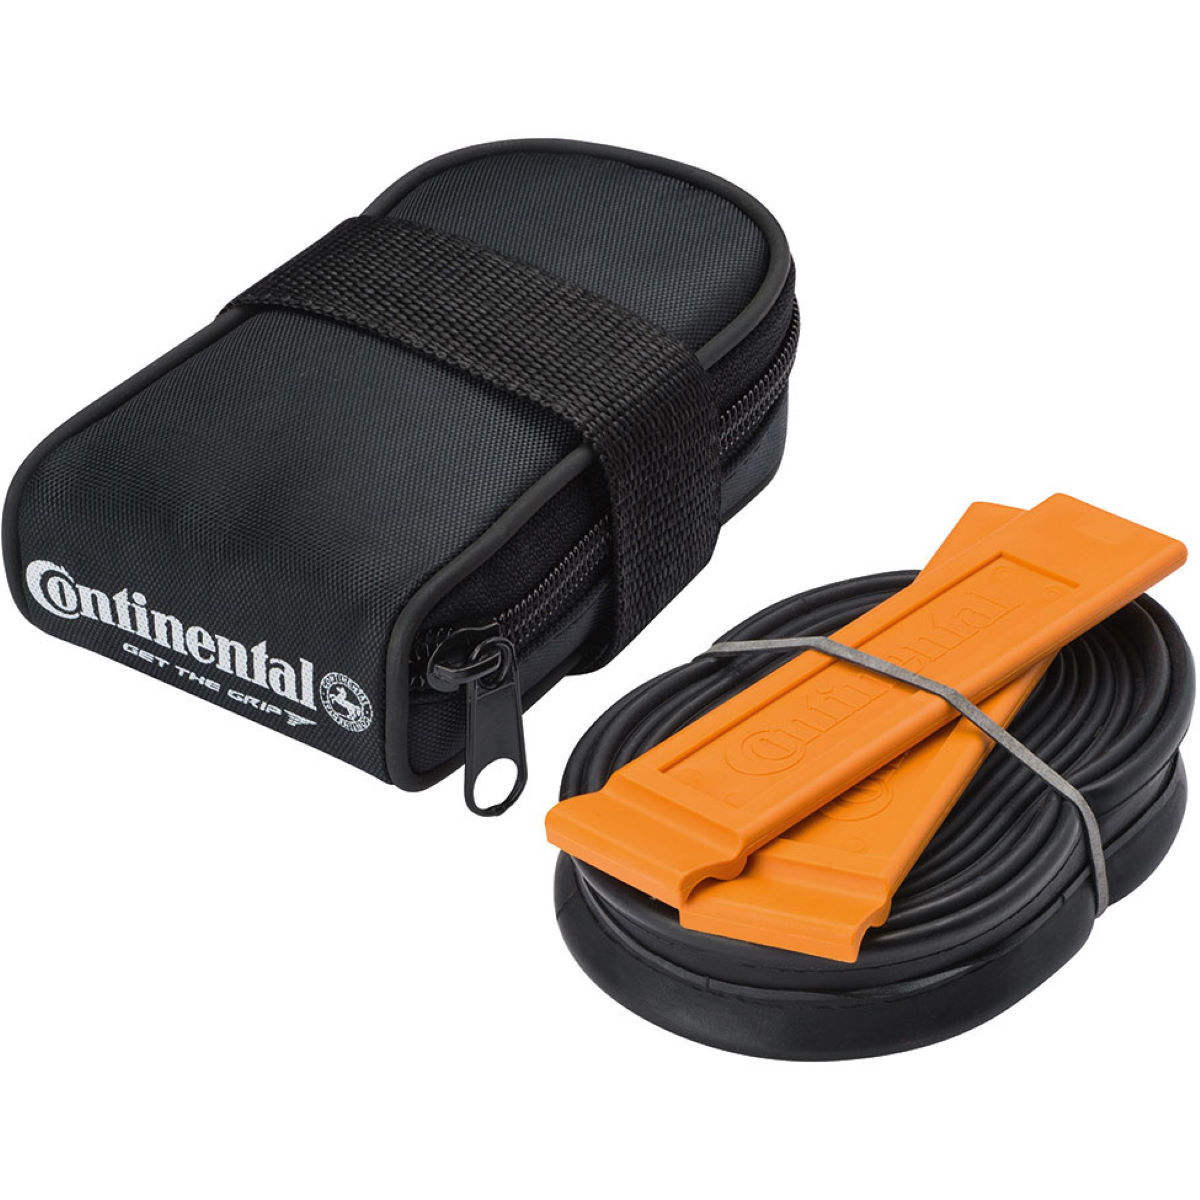 Image of Continental Tube Bag with Tube And Tyre Levers Saddle Bags